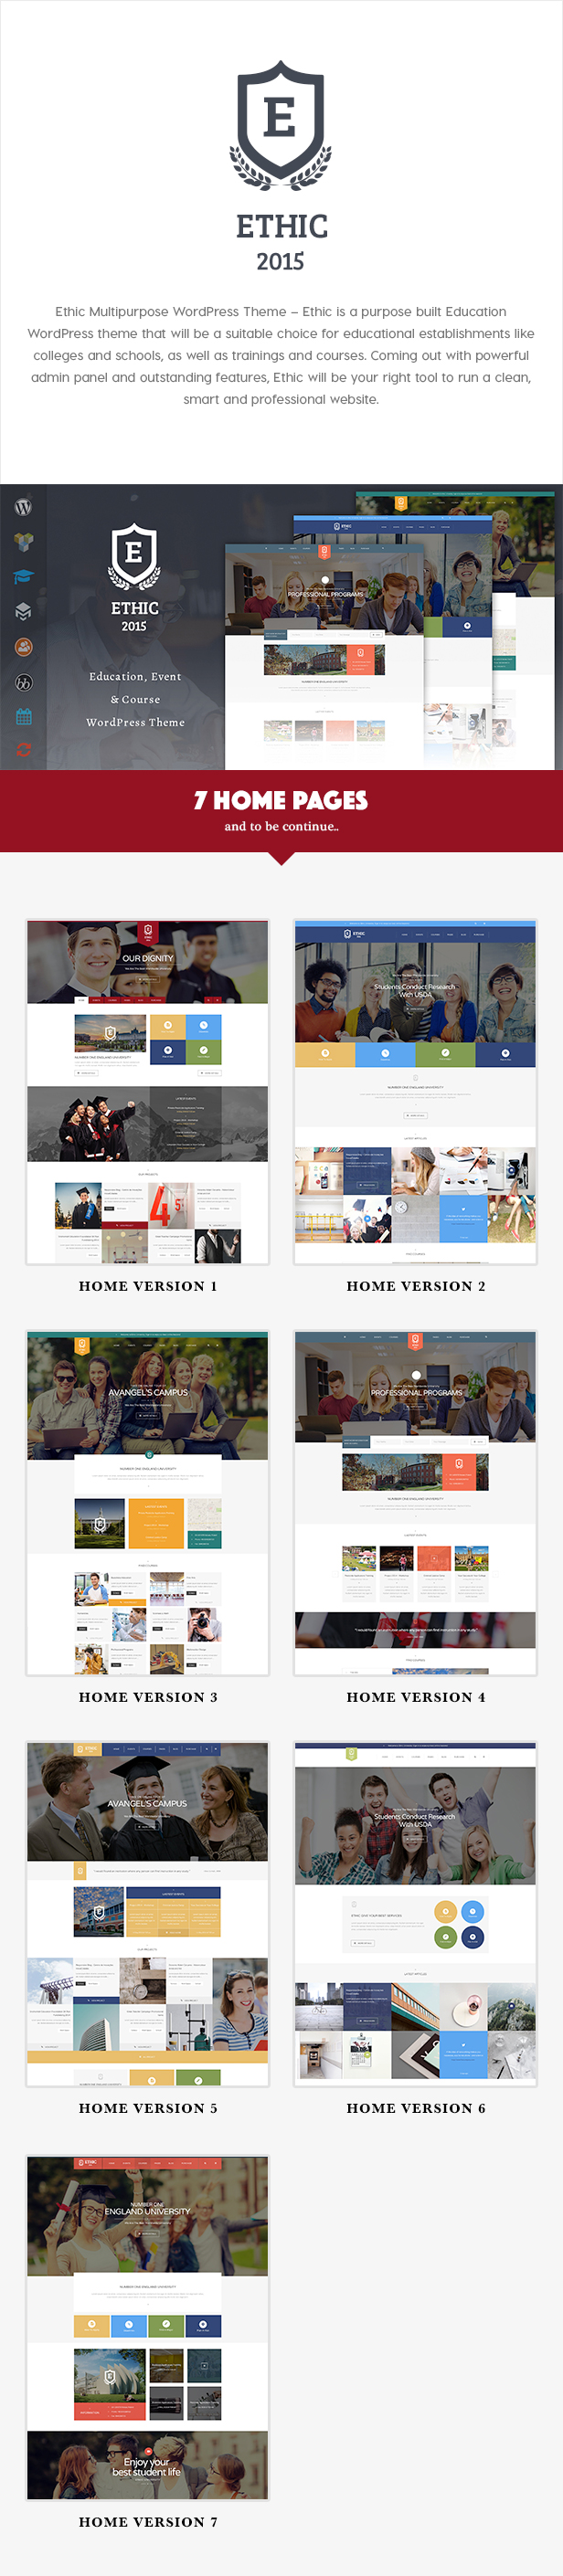 Education, Event and Course - ETHIC LMS Theme